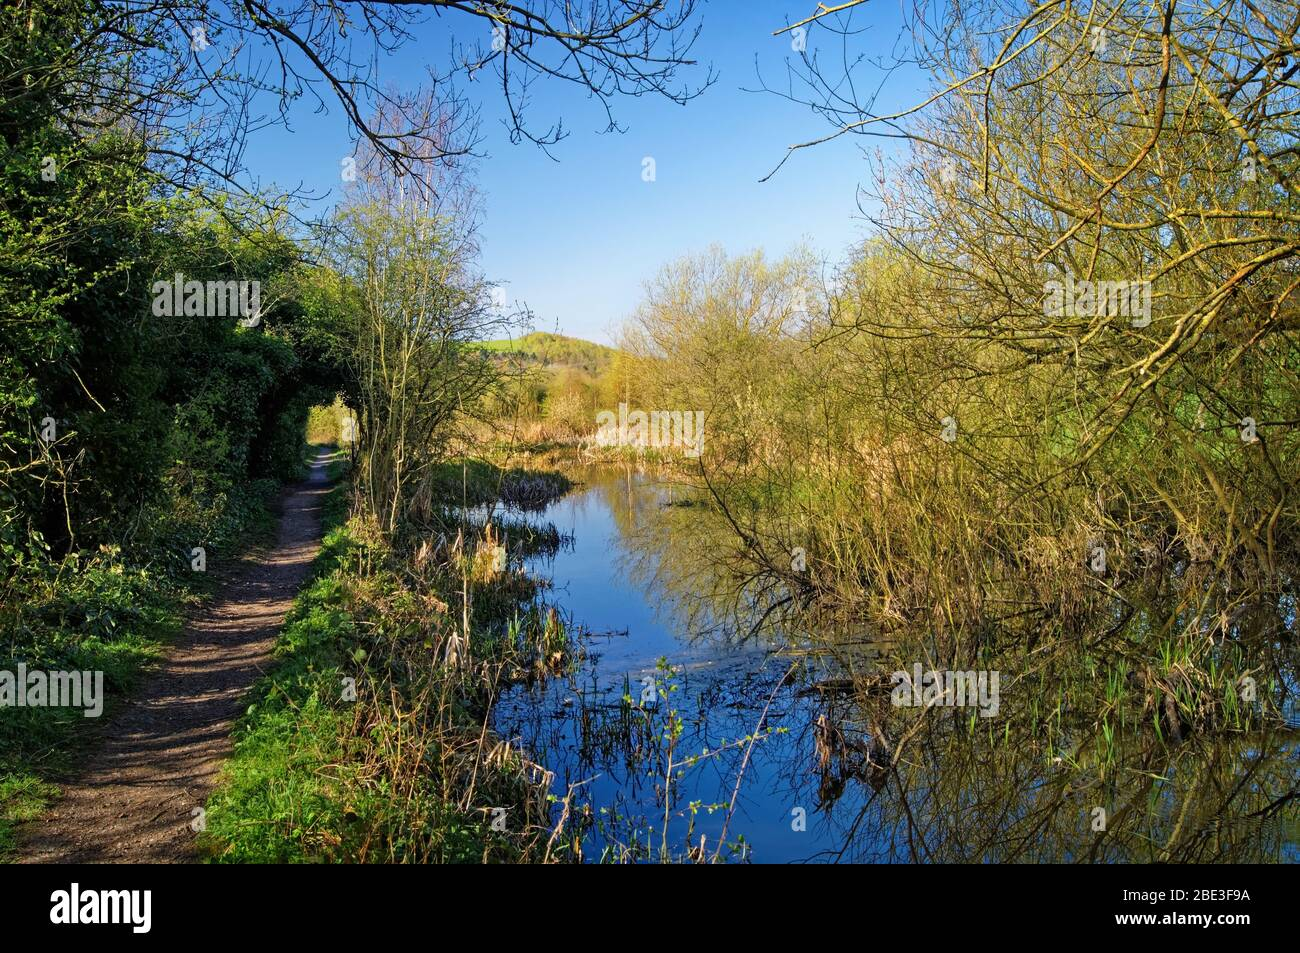 UK,South Yorkshire,Barnsley,Elsecar Canal and Footpath Stock Photo